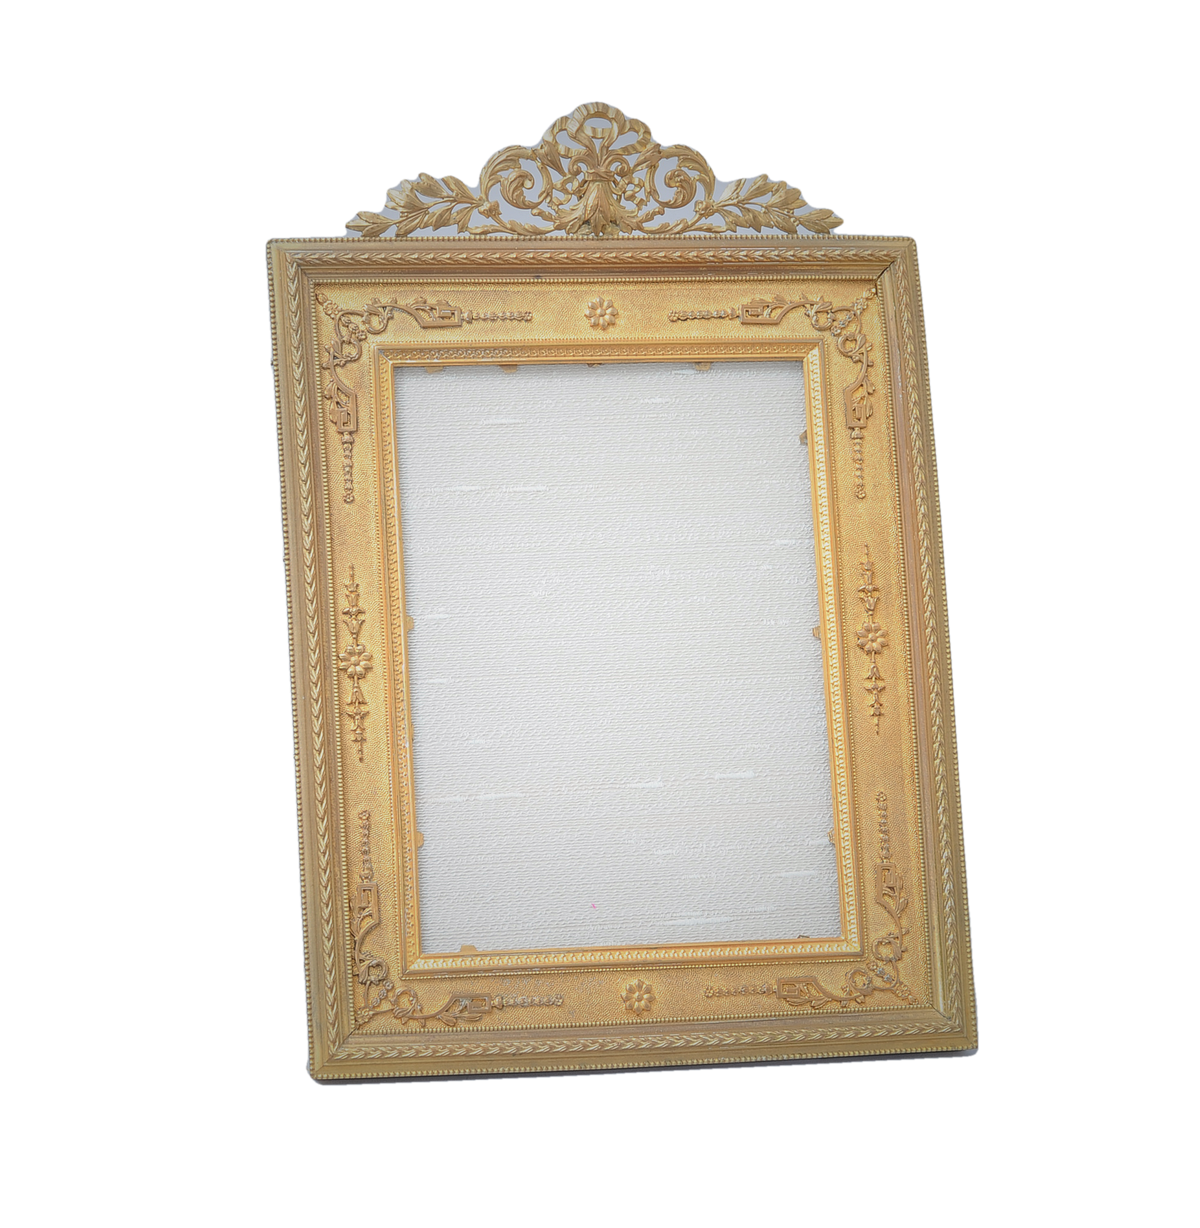 Lord and Taylor Art Deco Gilt Bronze Table Top Frame. American, Early 20th C.